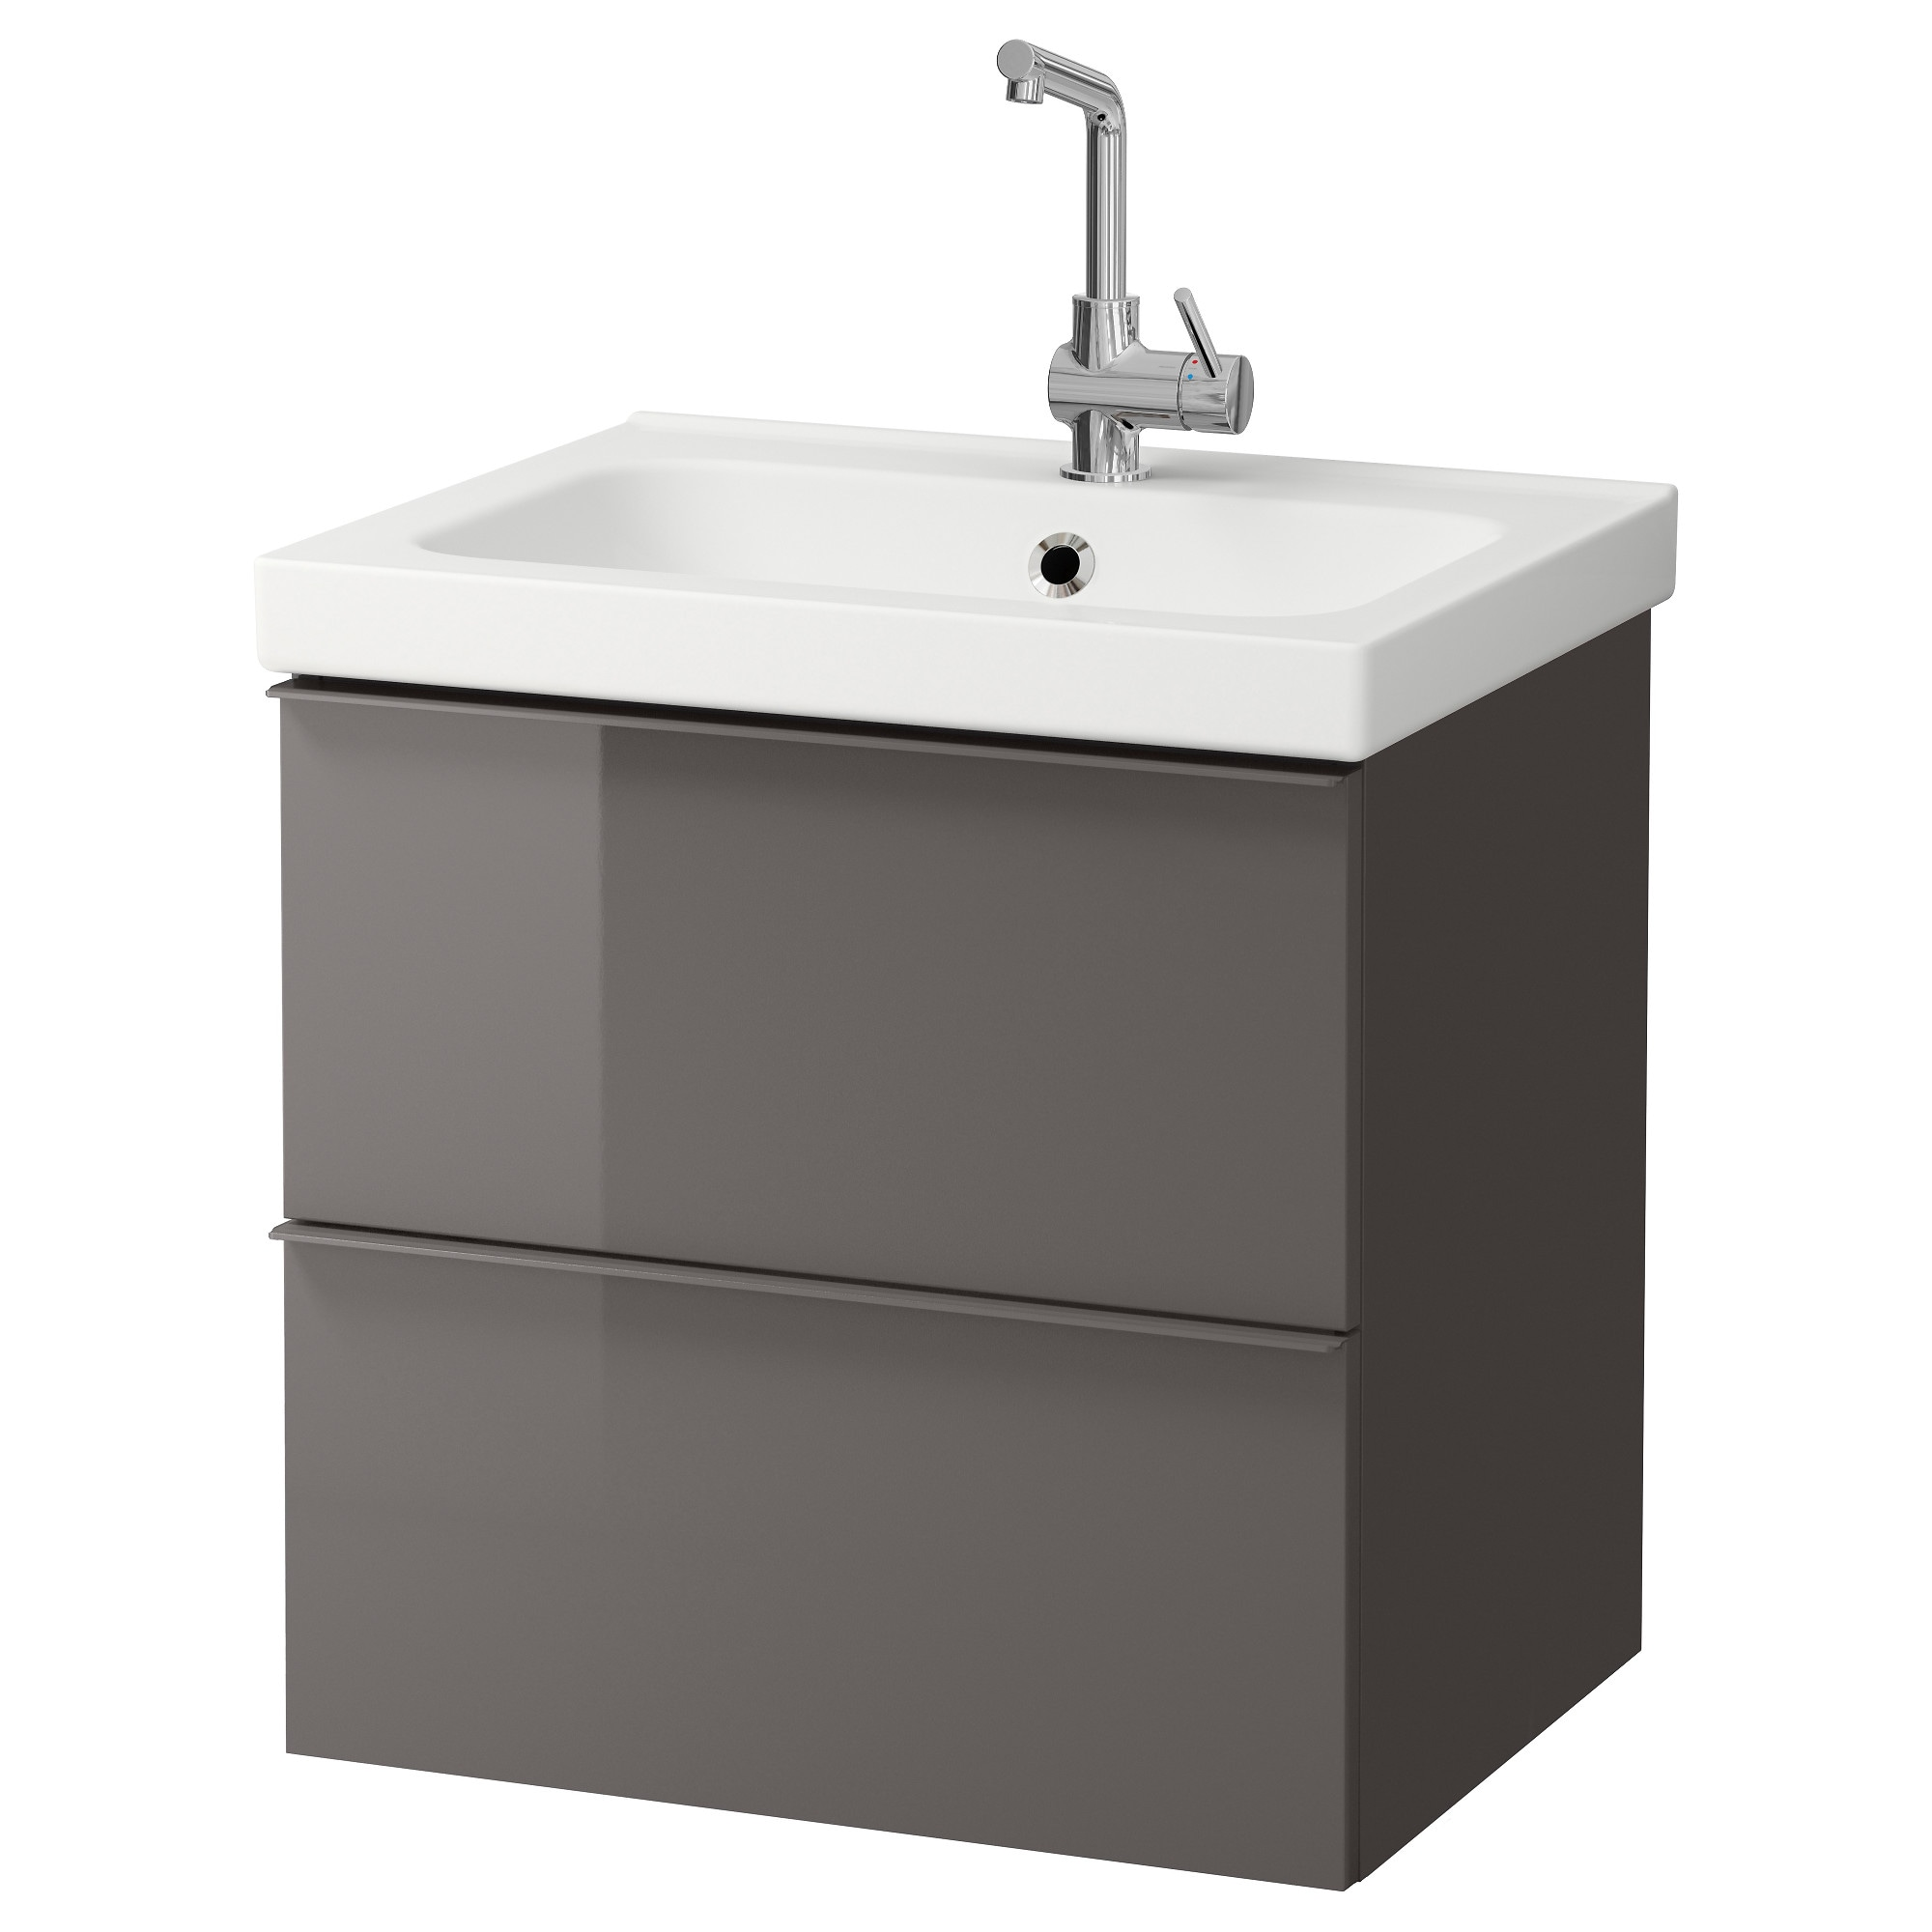 Bathroom Sinks With Cabinet godmorgon / odensvik sink cabinet with 2 drawers - high gloss